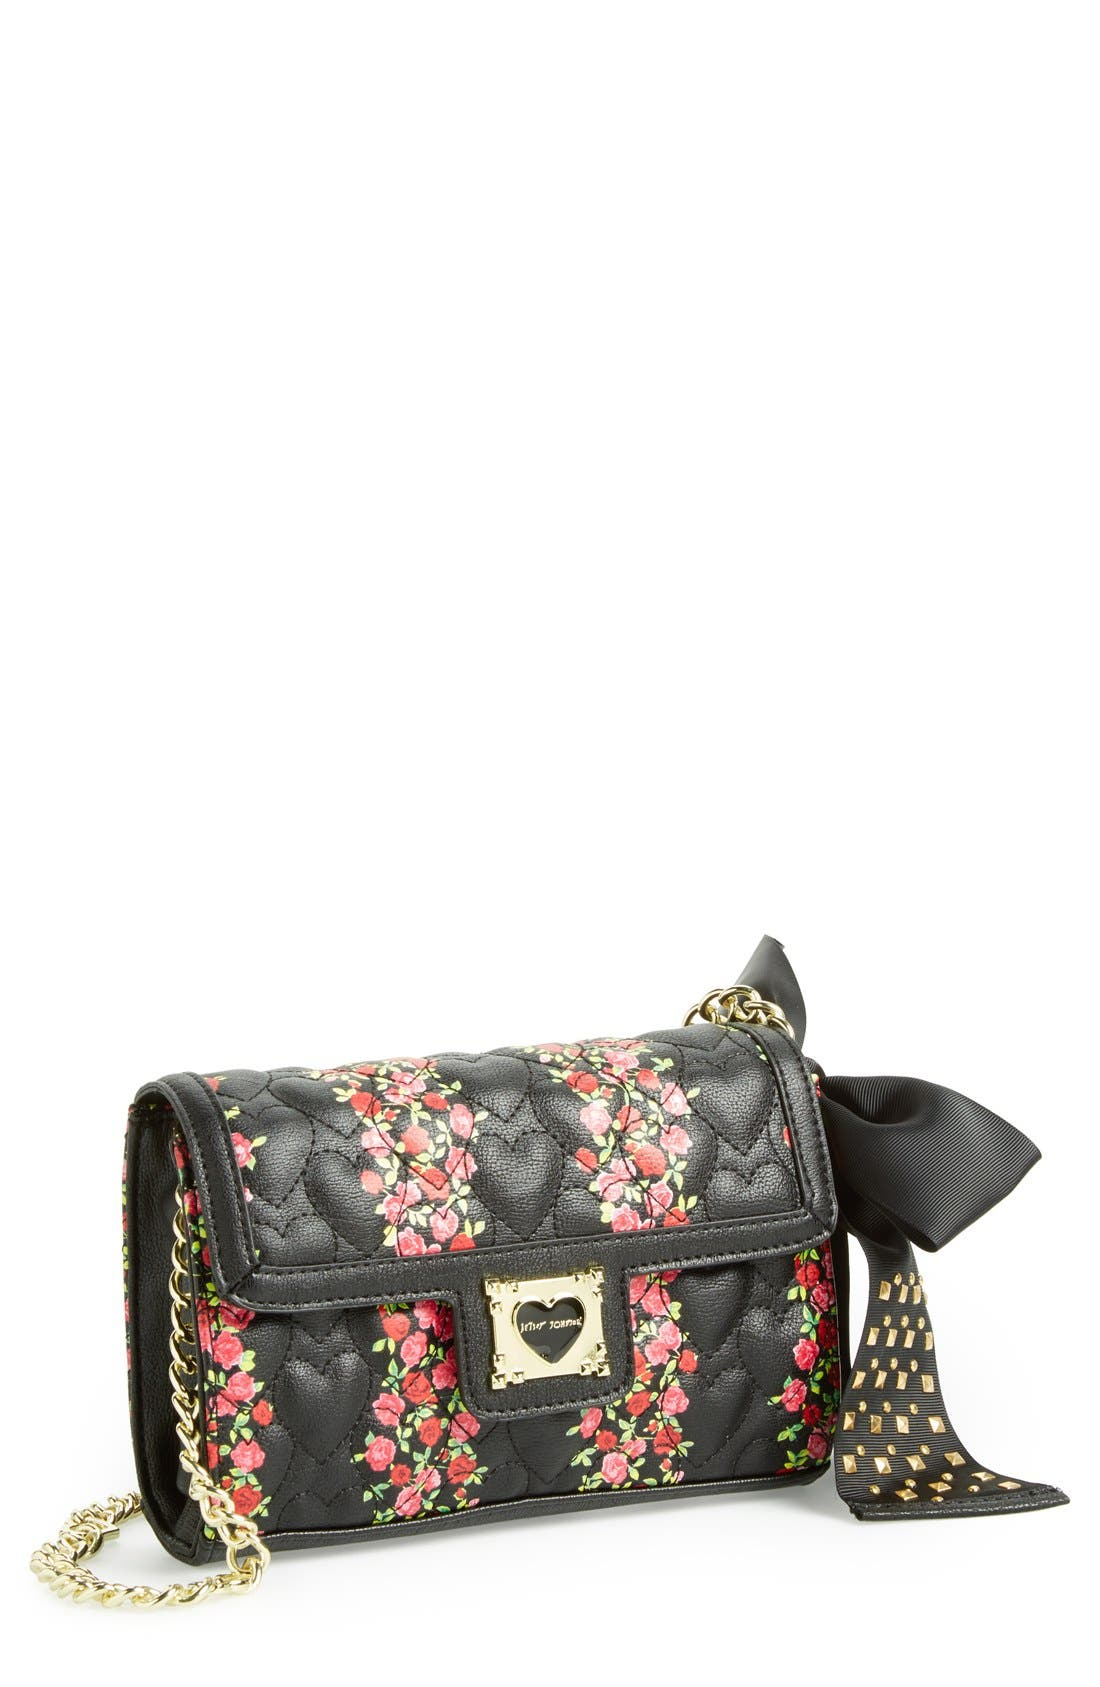 Alternate Image 1 Selected - Betsey Johnson 'Be My Sweetheart' Crossbody Bag